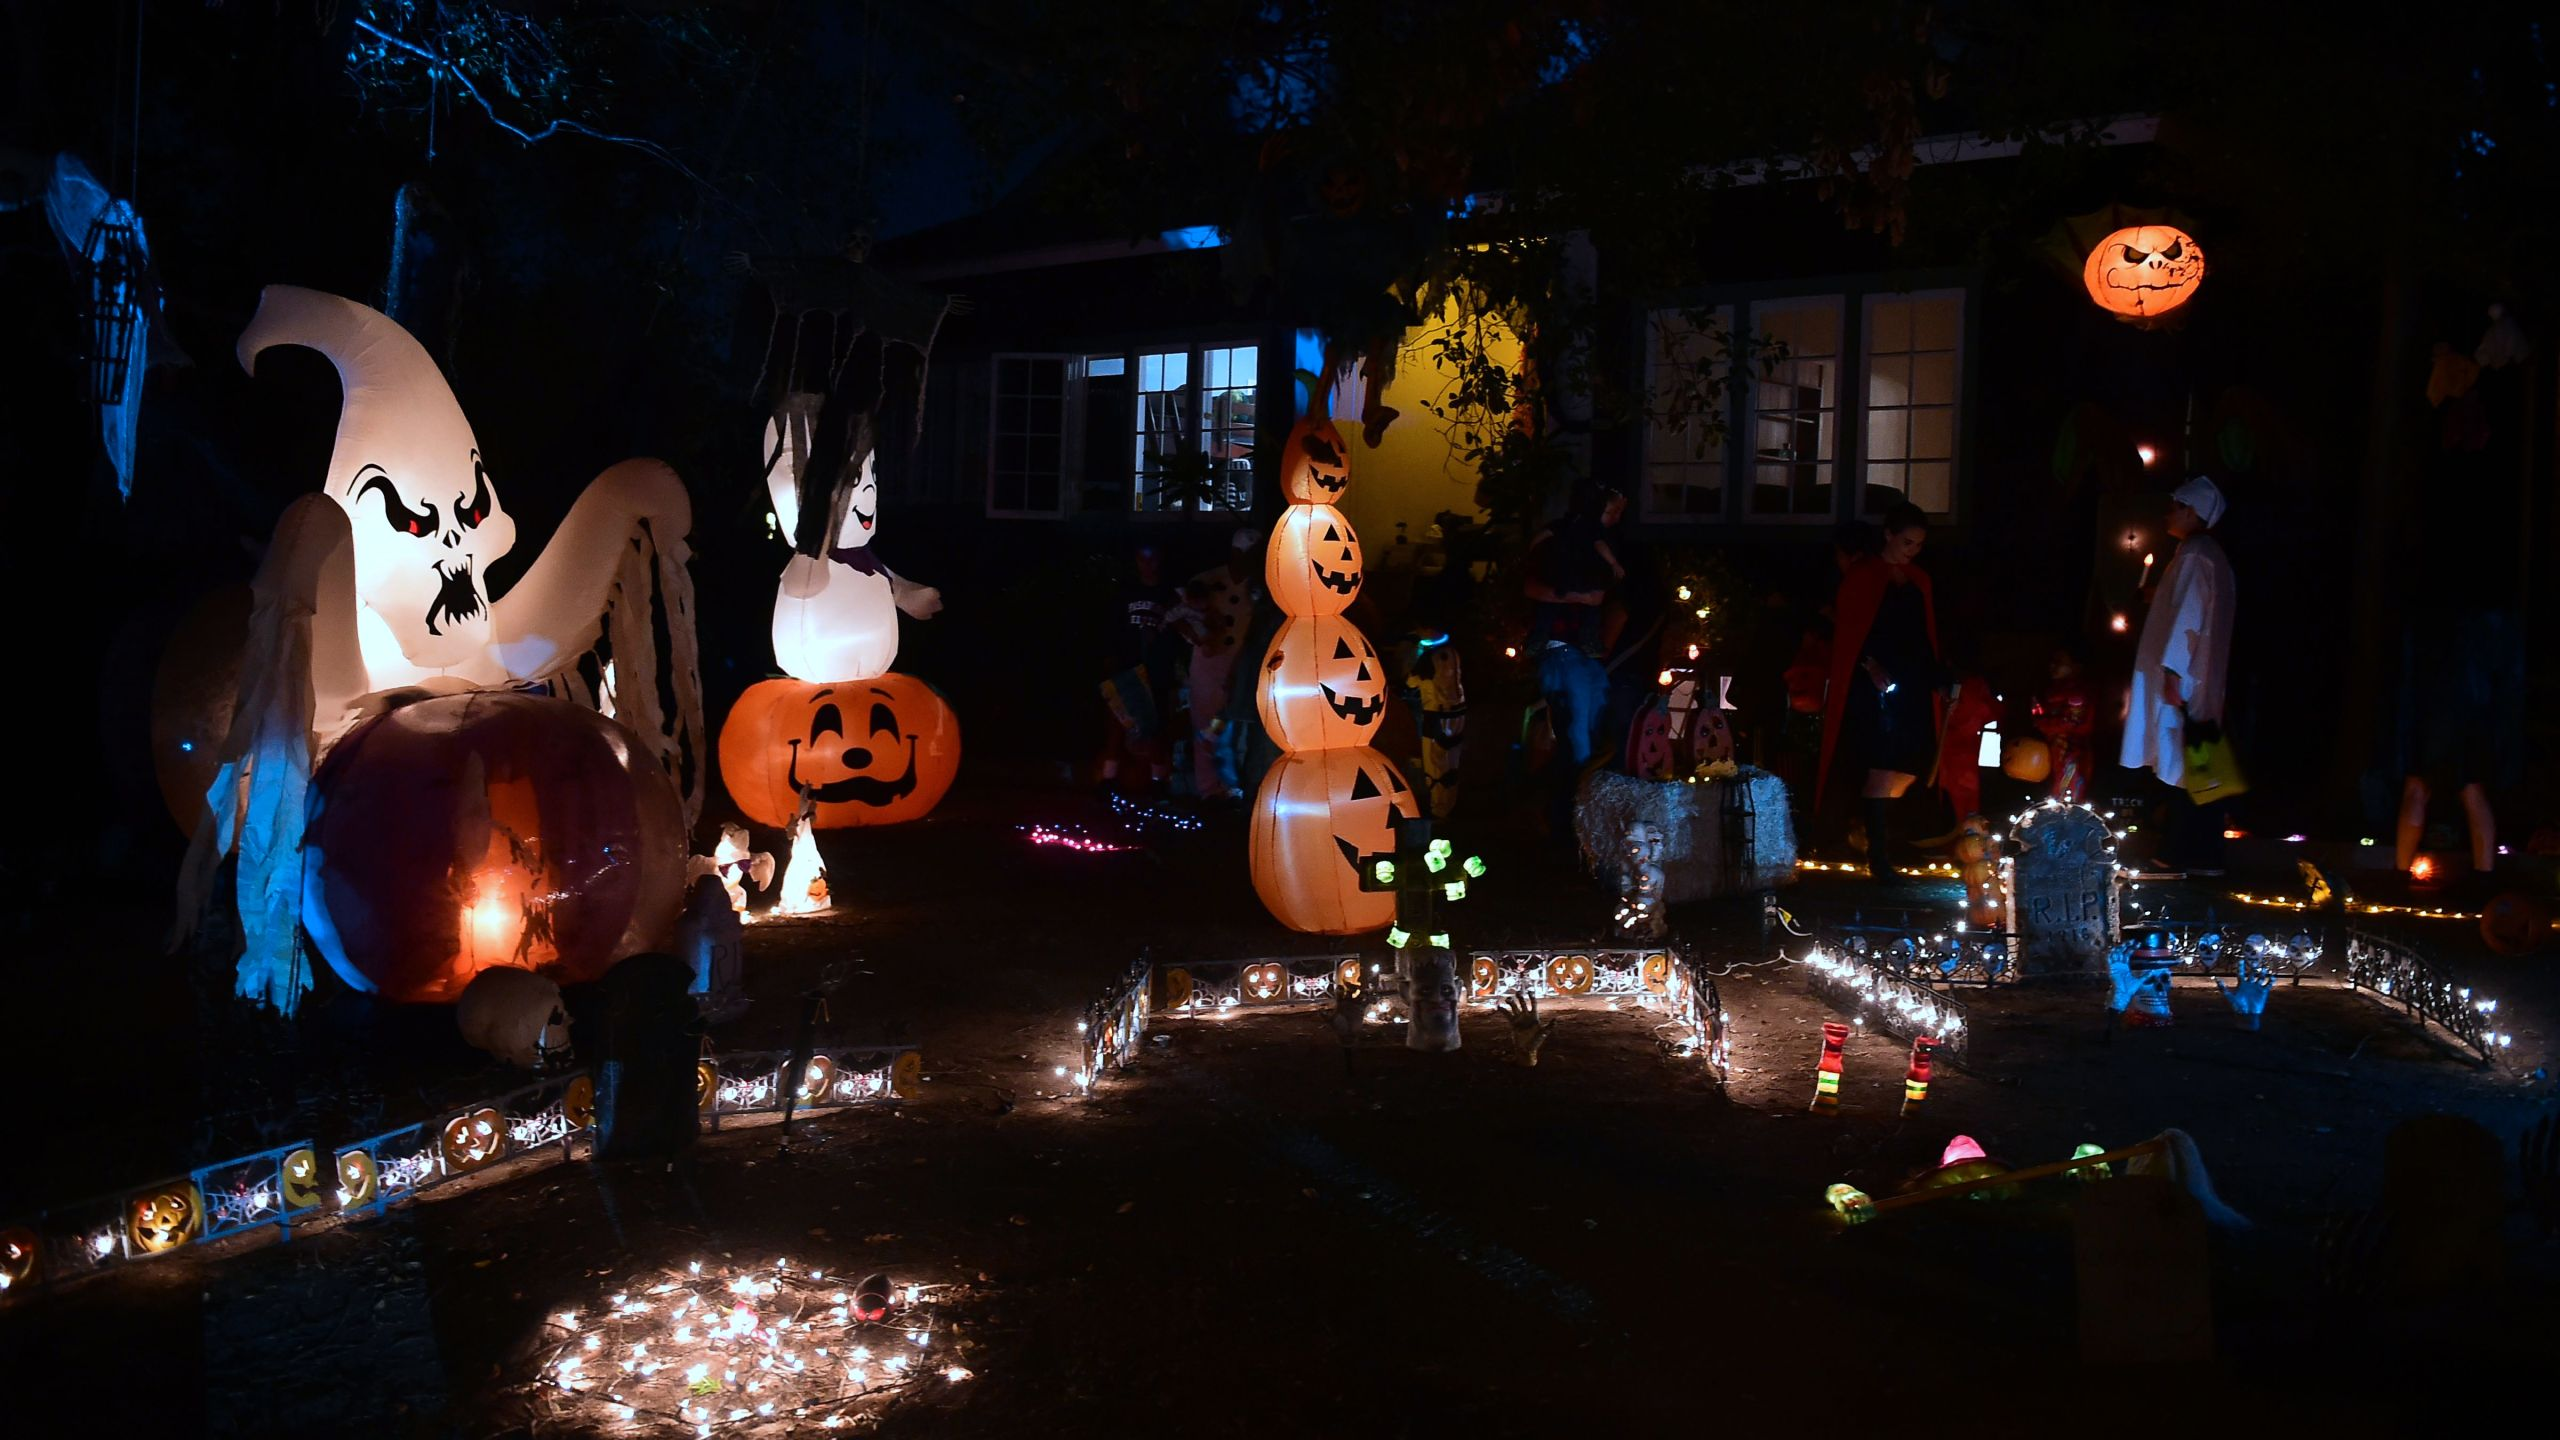 Trick or Treaters out for candy on a street popular for its tradition of home decorations on Halloween Night in Sierra Madre on October 31, 2018. (Credit: FREDERIC J. BROWN/AFP/Getty Images)